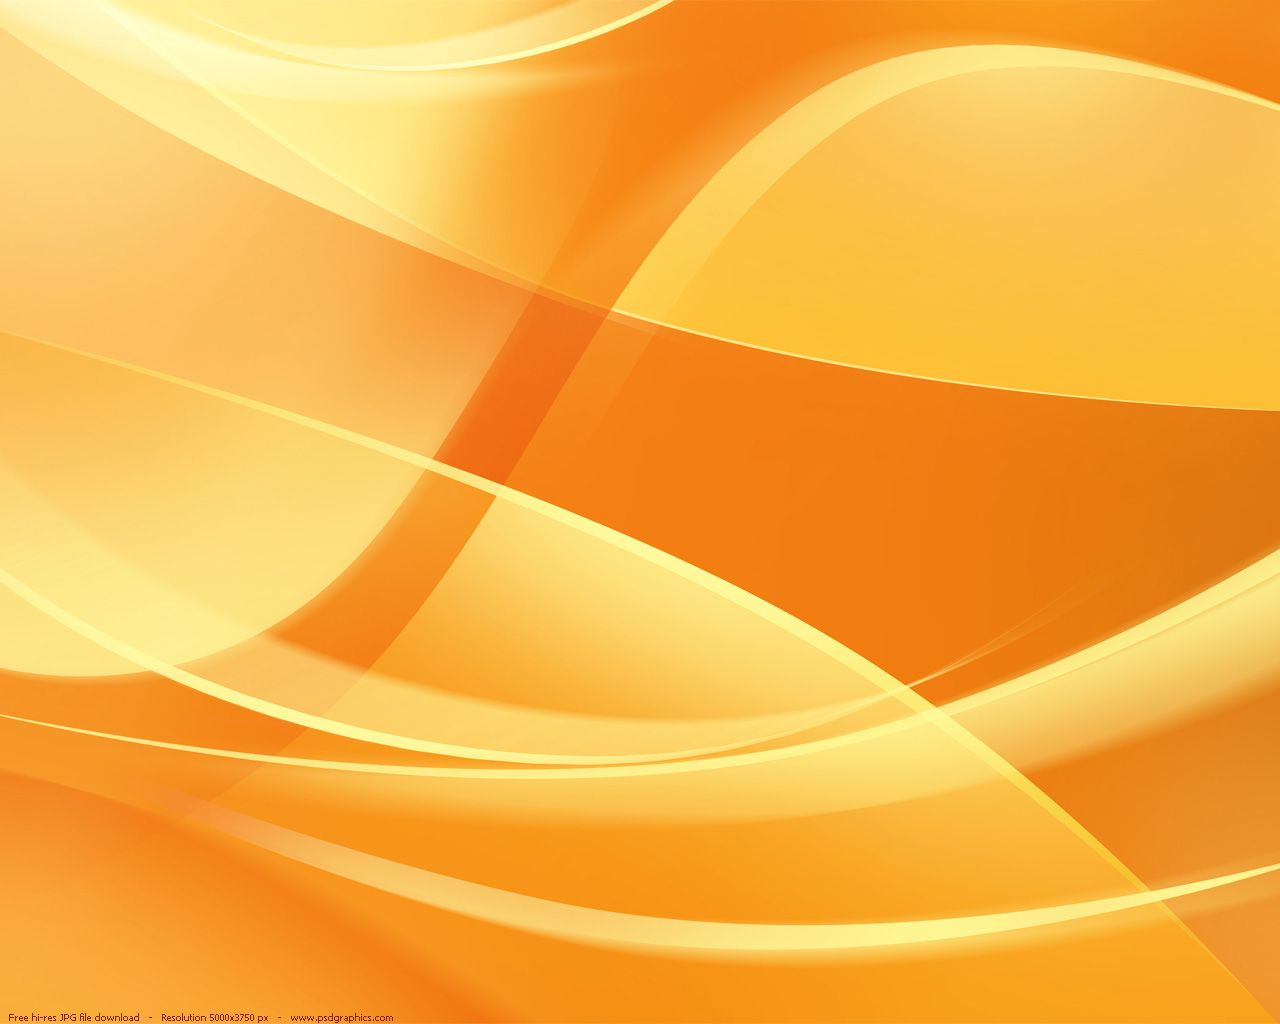 Abstract Orange Backgrounds Orange Background Photoshop Backgrounds Abstract